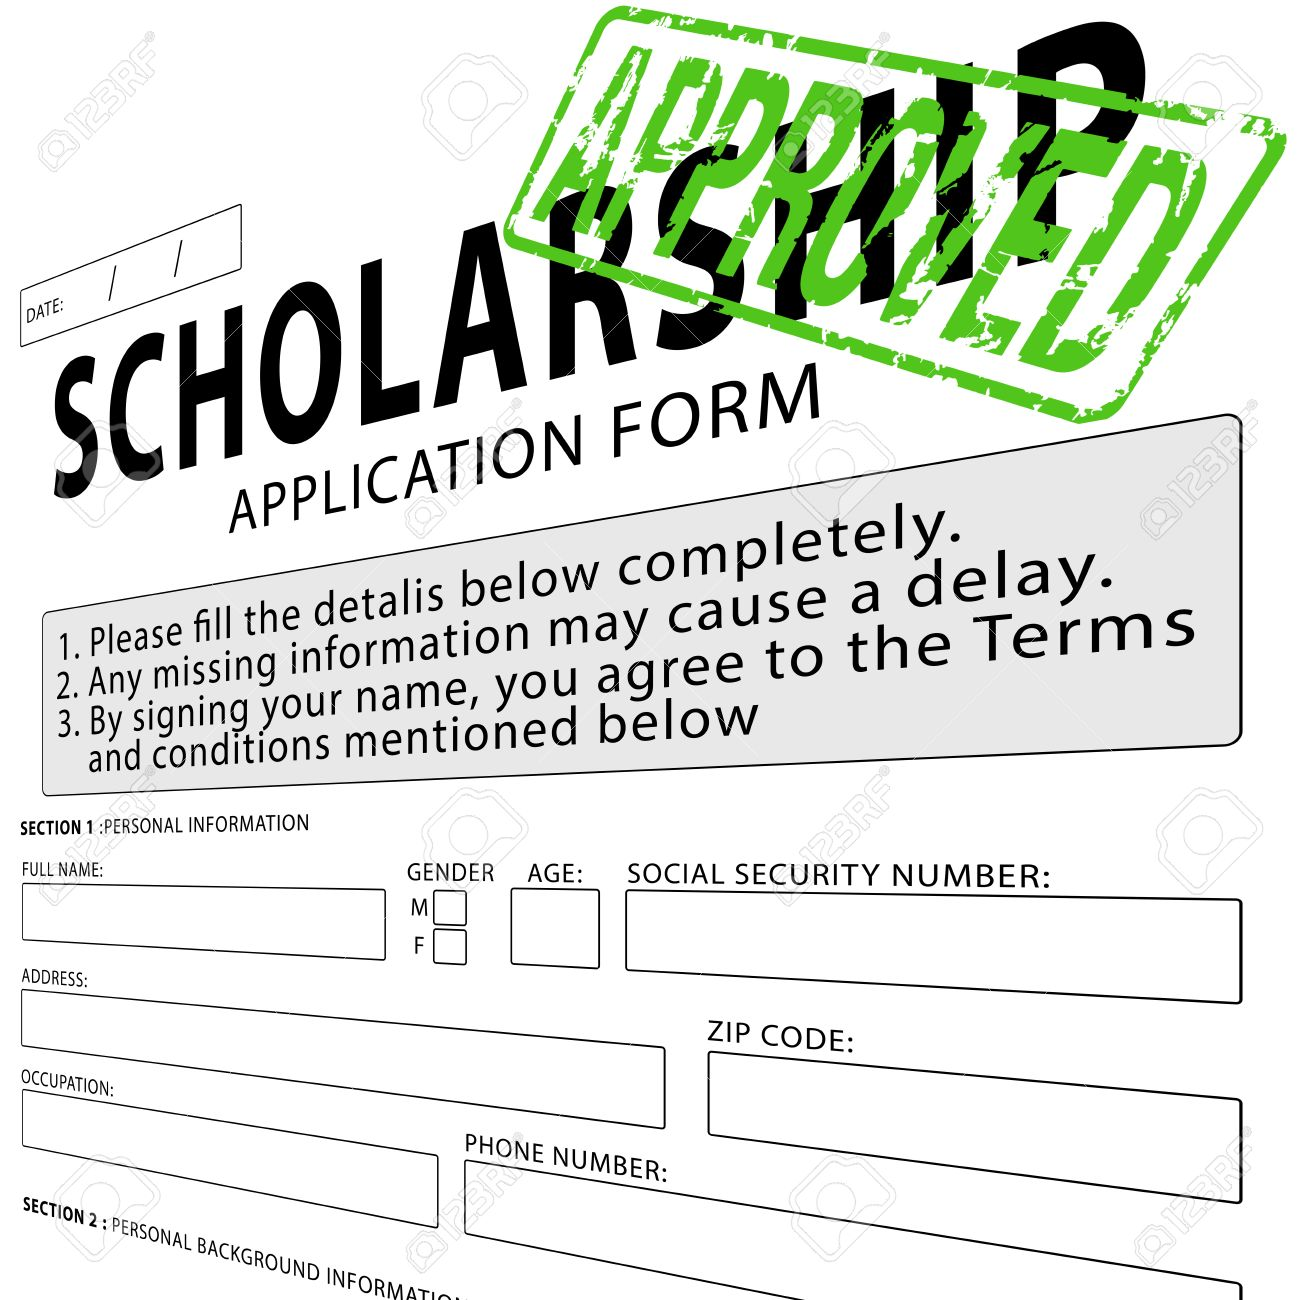 Scholarship Application Form With Green Approved Rubber Stamp Stock Photo    38116550